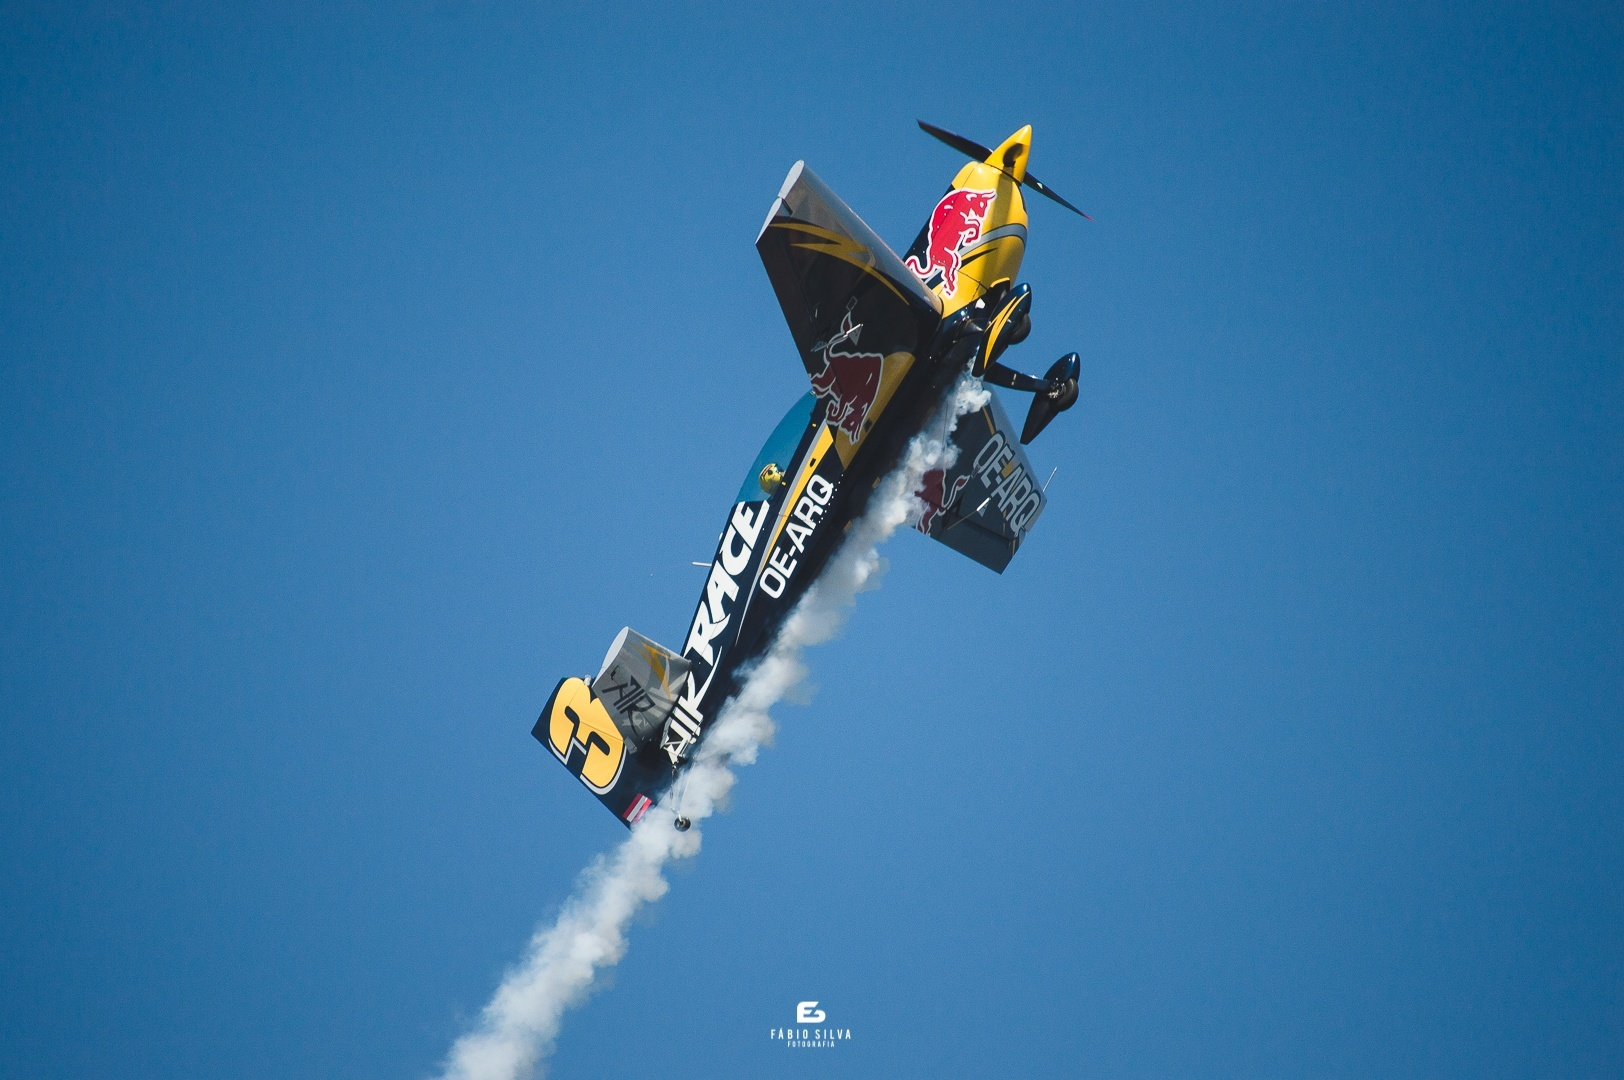 Desporto e Ação/RedBull Air Race Porto 2017